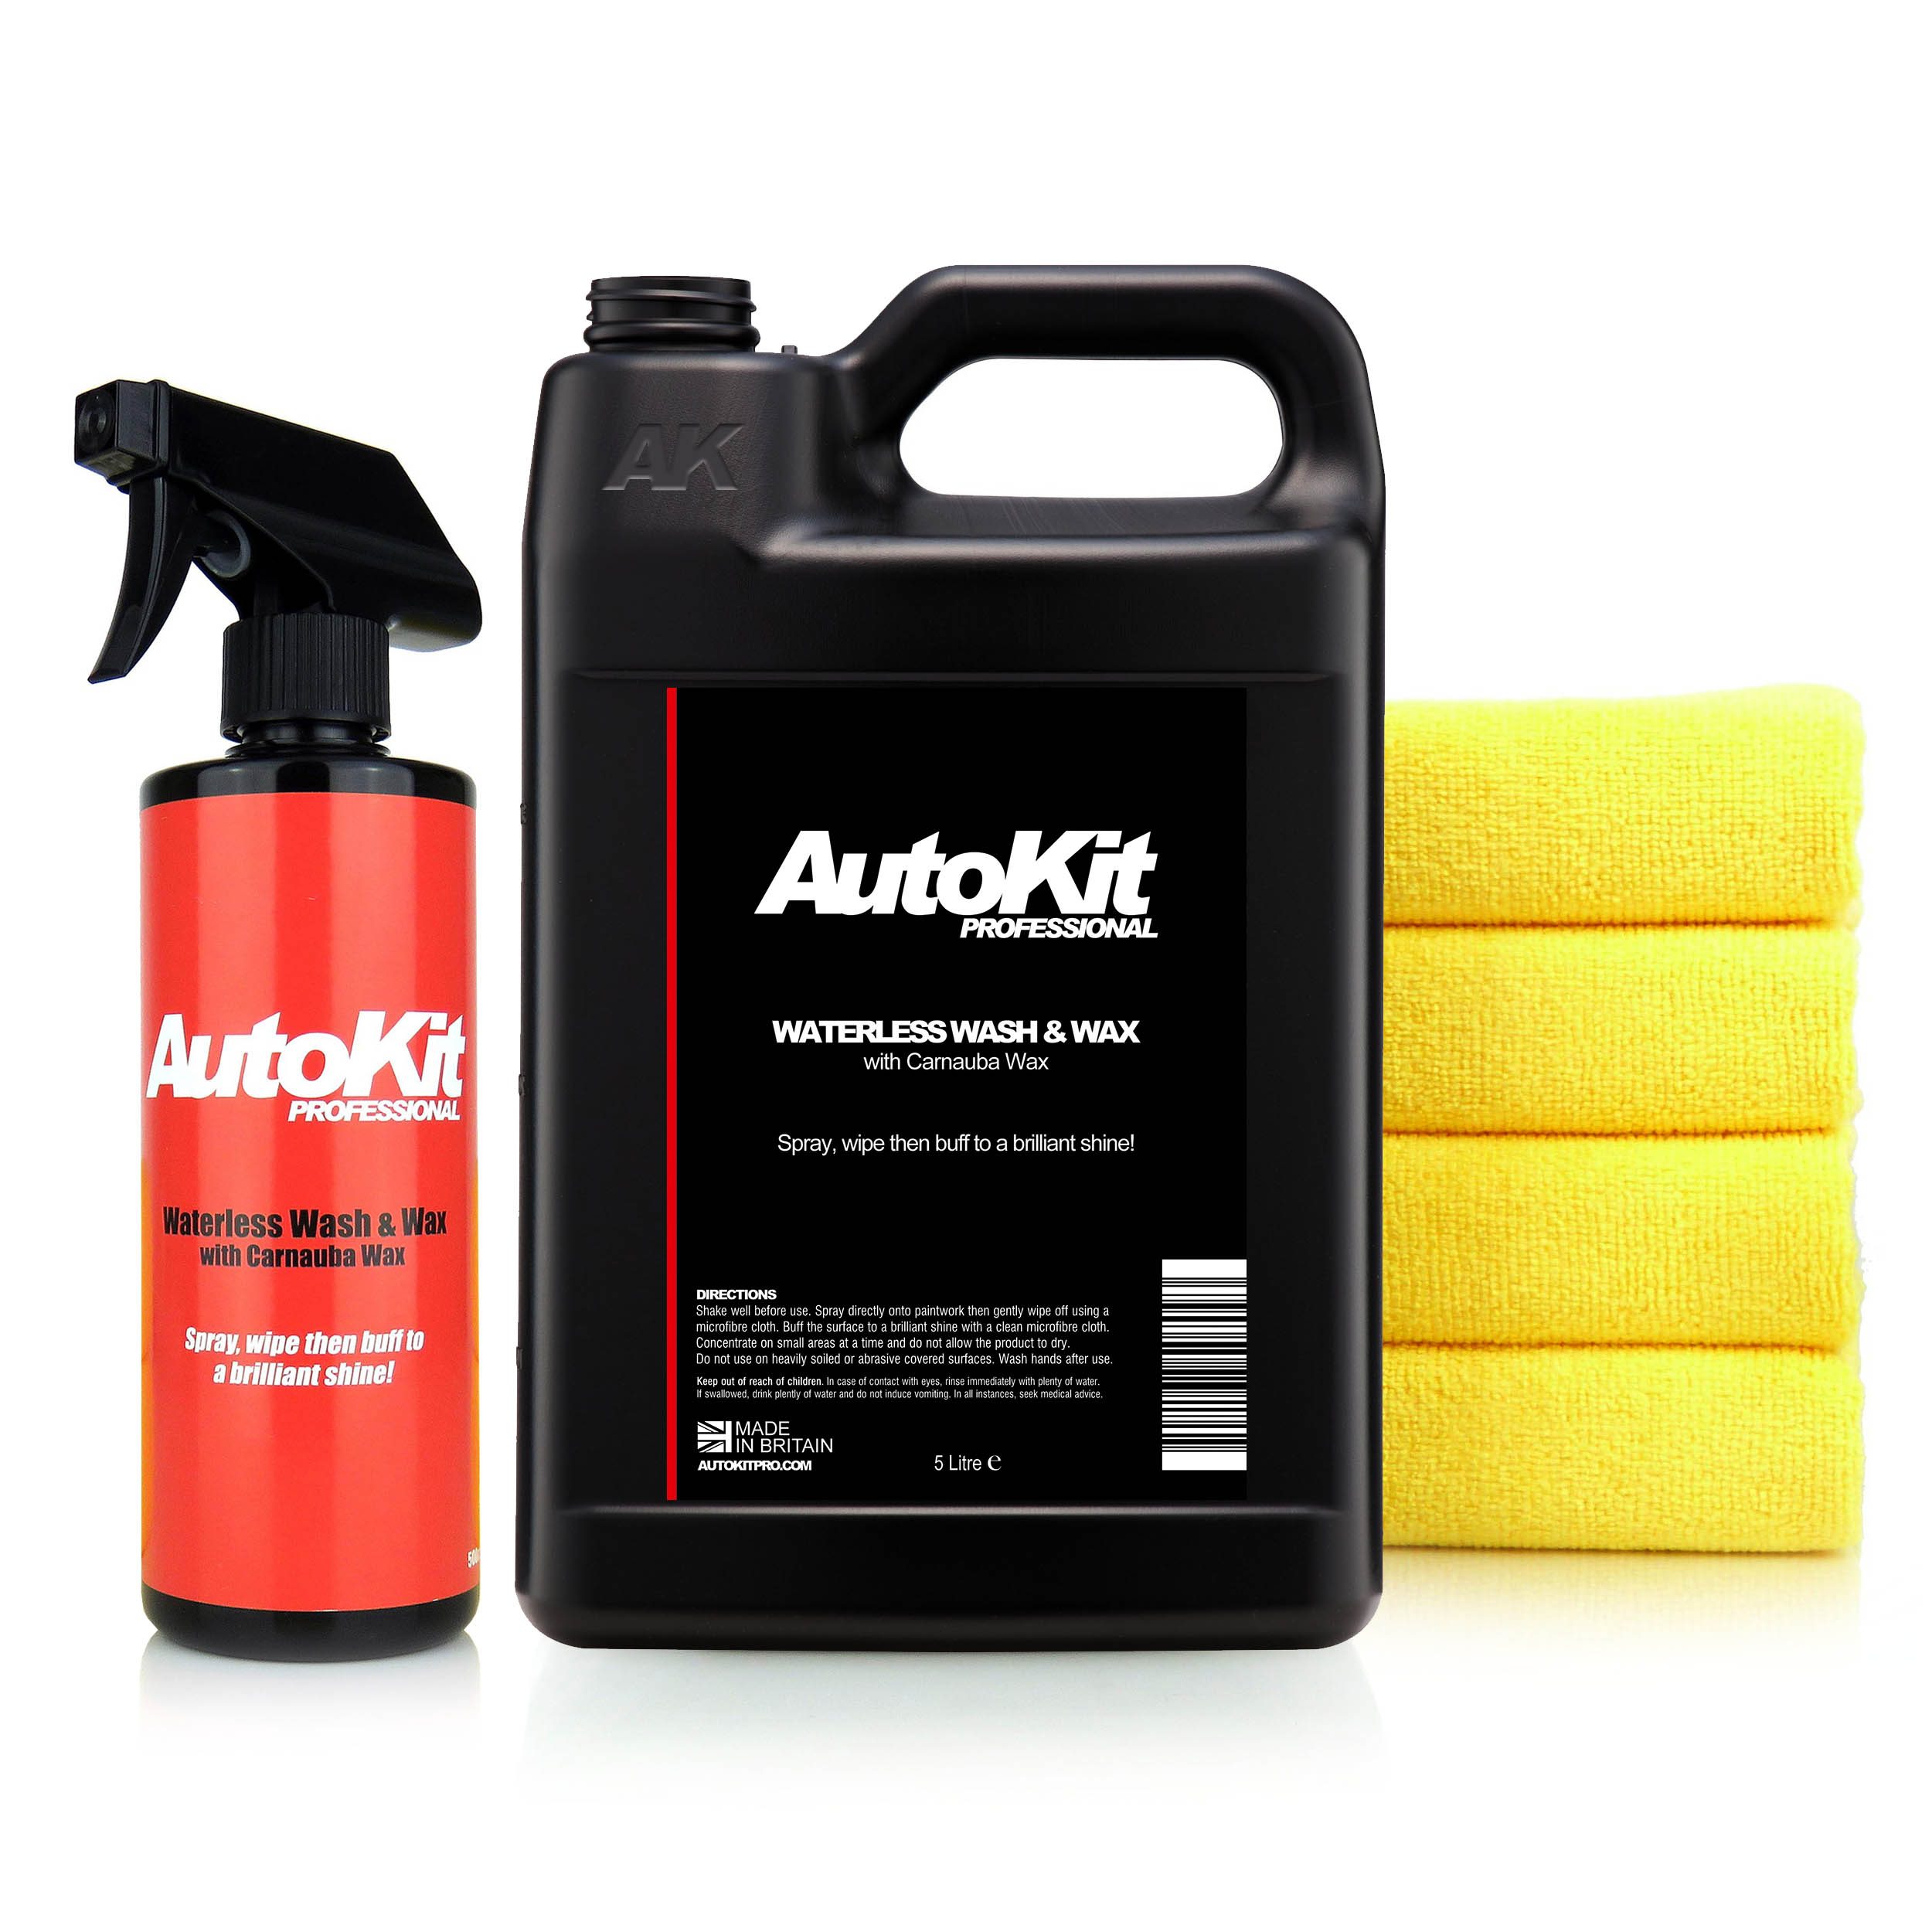 AutoKit Waterless Wash and Wax - 5.5L Kit